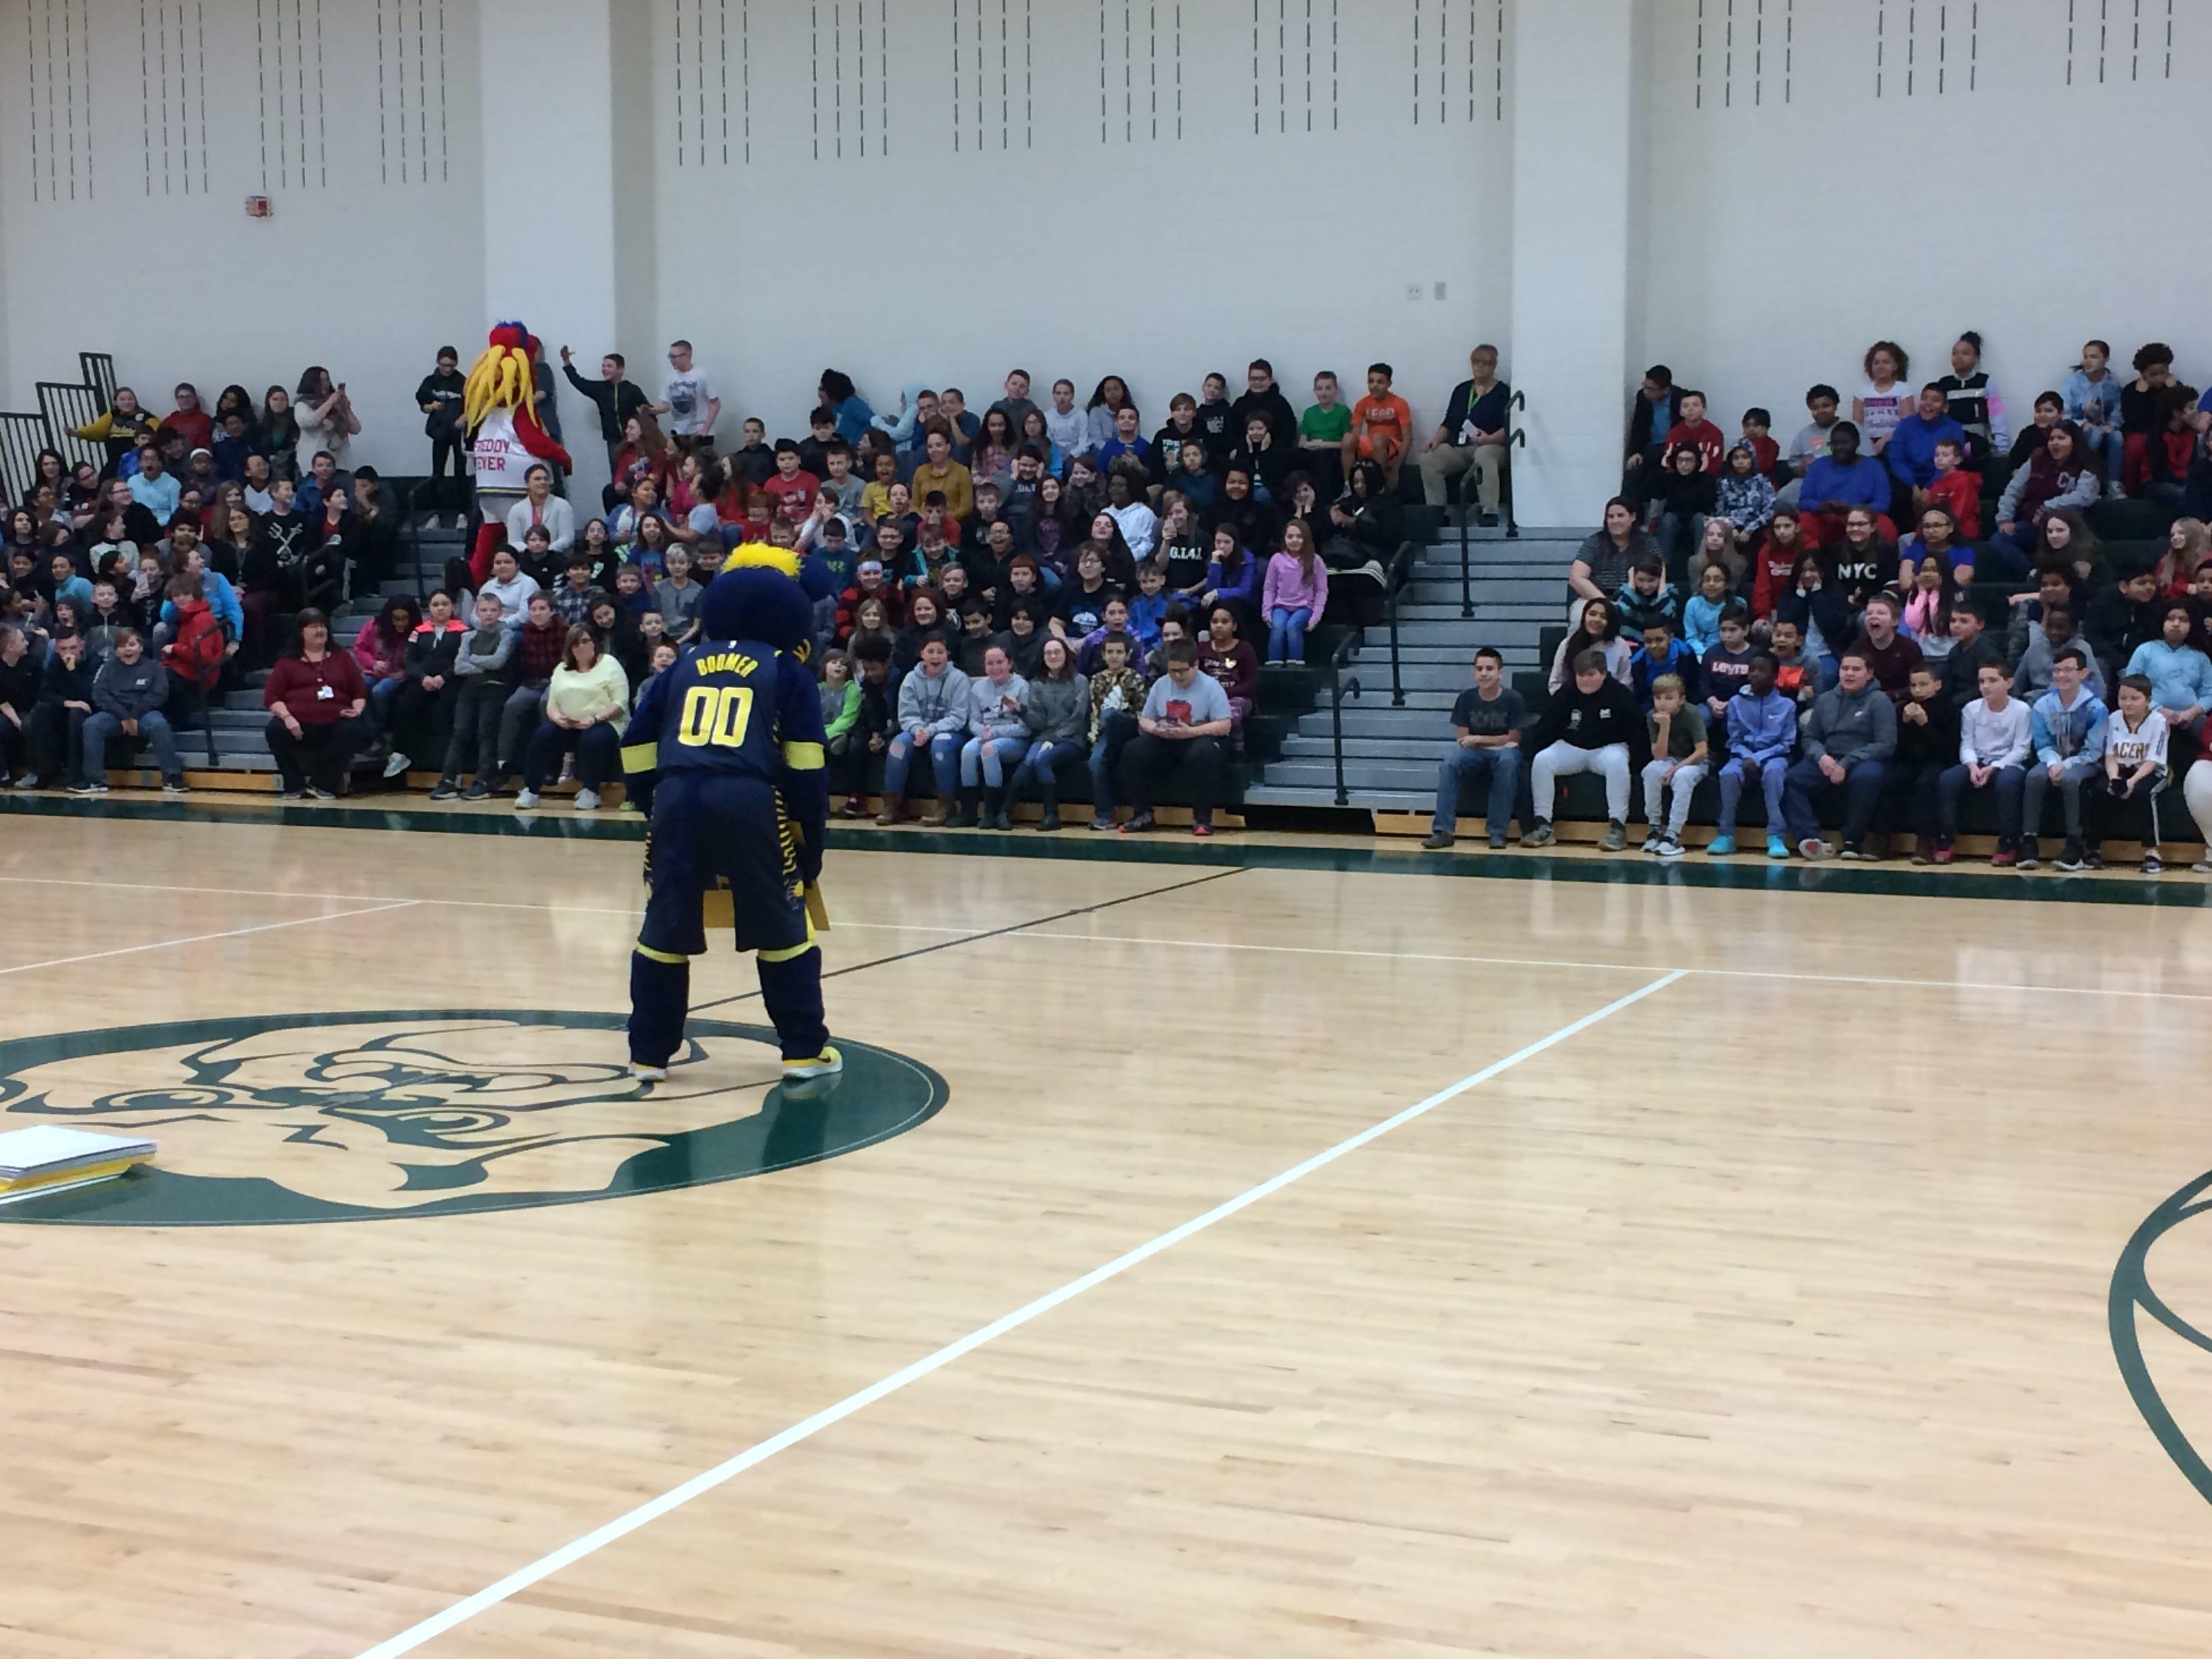 Boomer communicates with signs during a program Wednesday in Dennis Intermediate School.